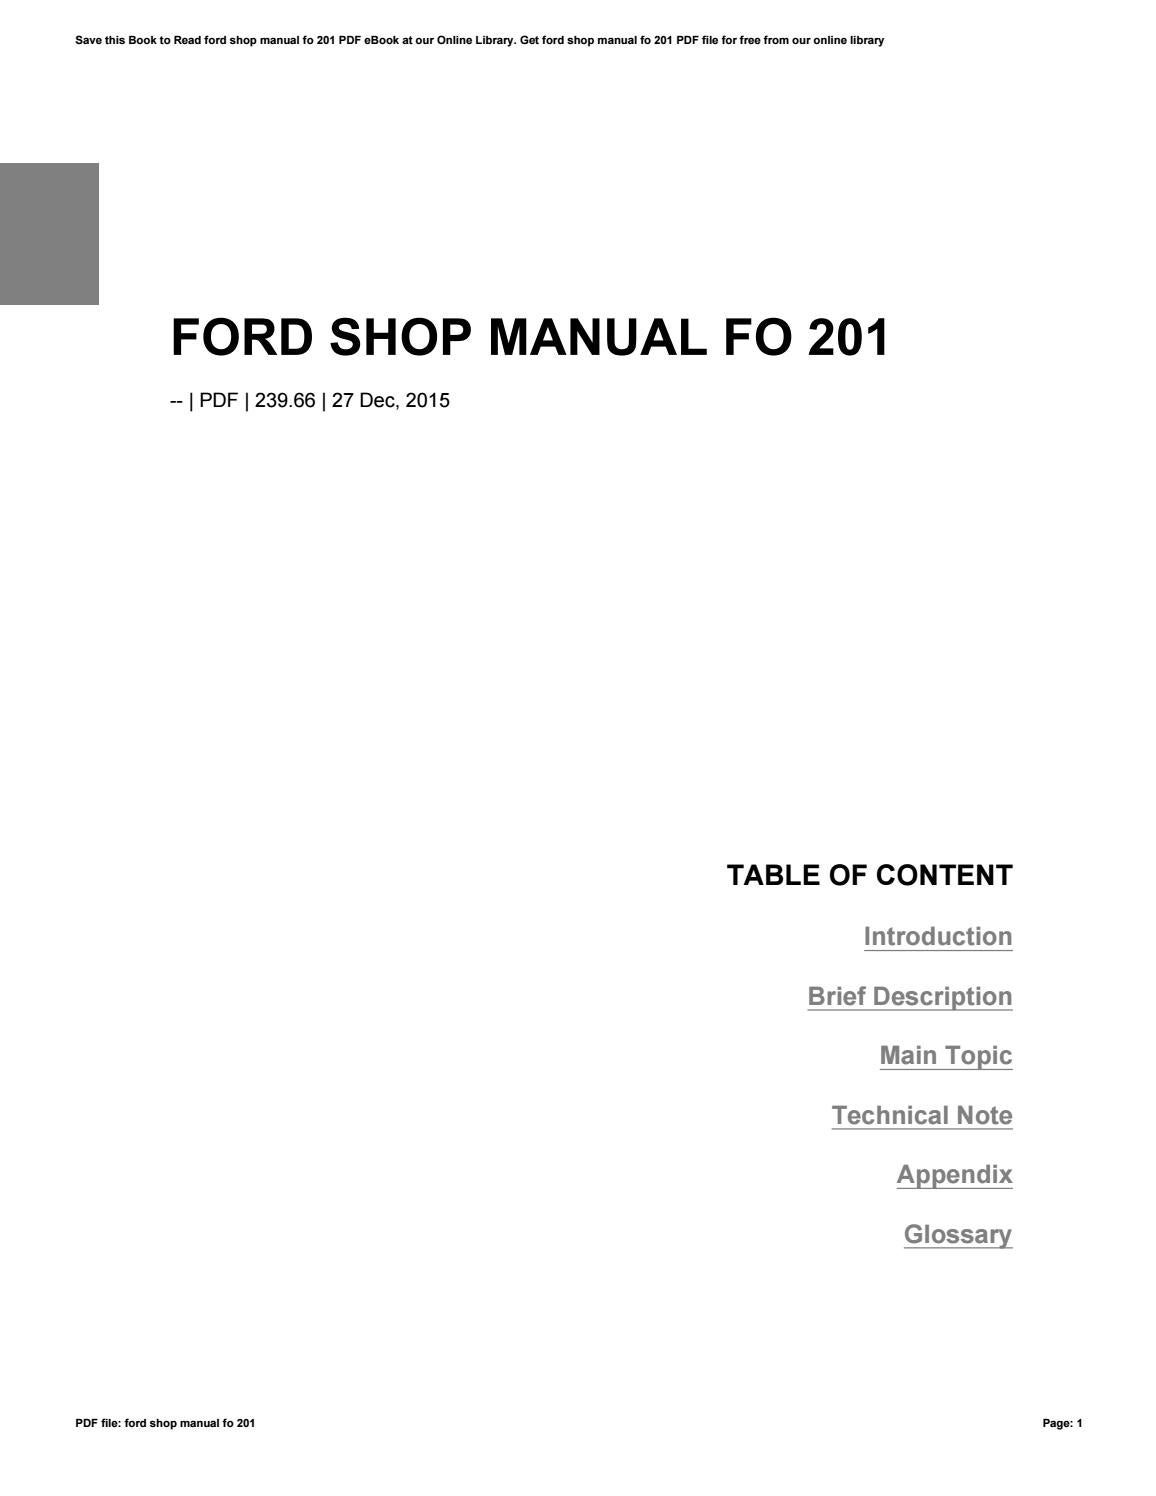 ford shop manuals free